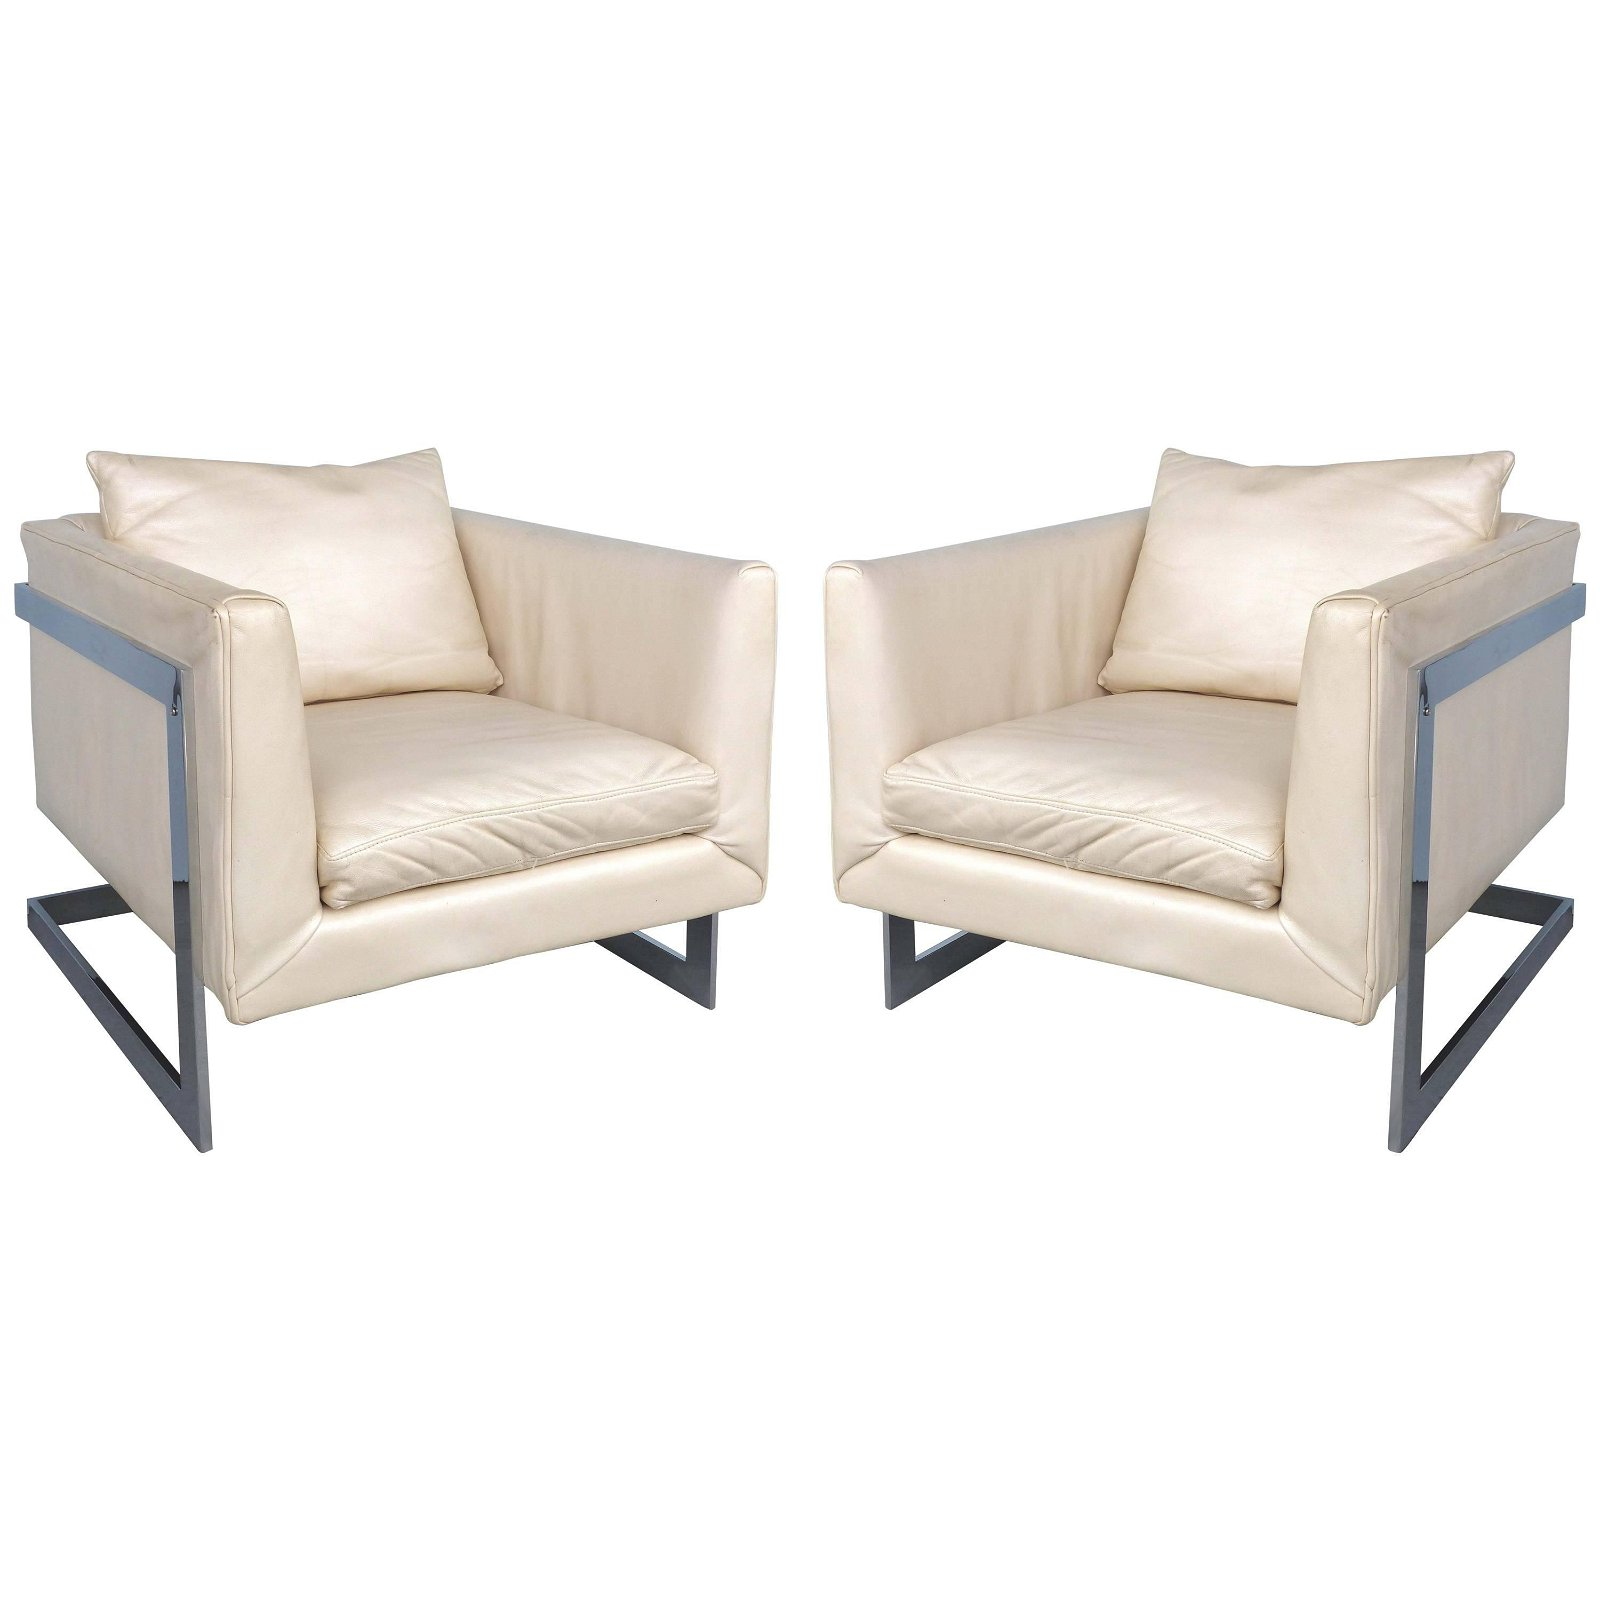 MidC. Attr. to M. Baughman Chrome & Ivory Chairs